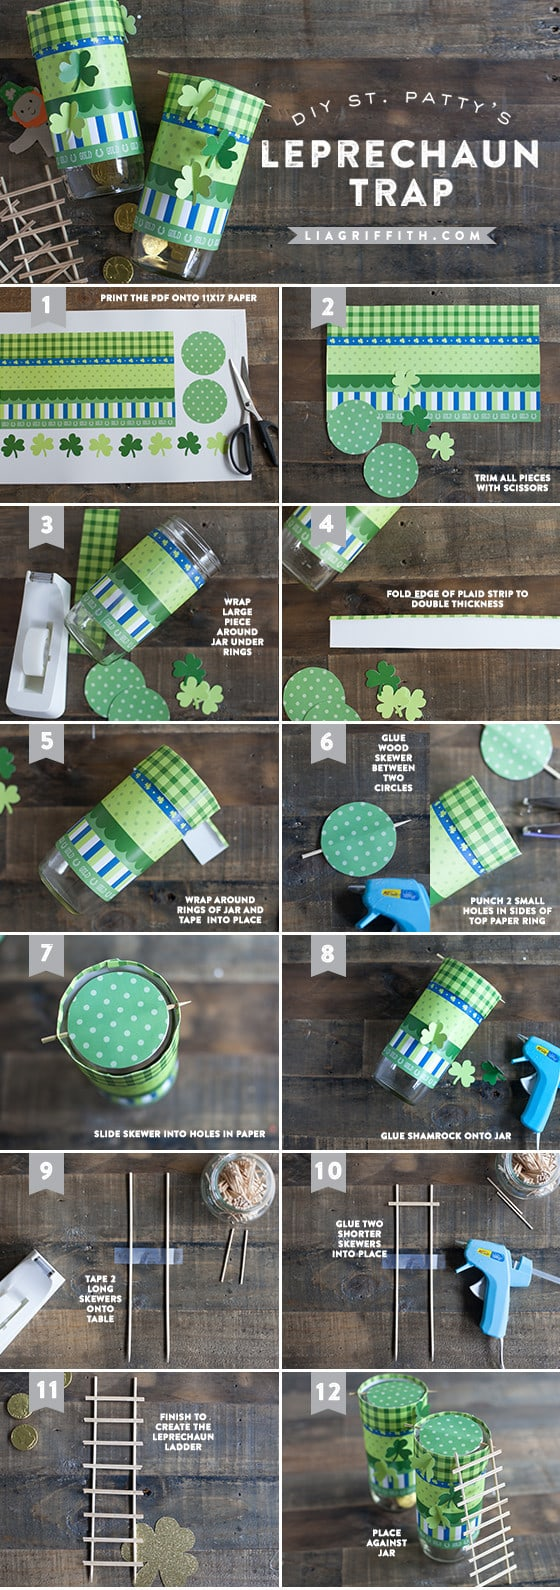 A visual guide to making a LeprechaunTrap for St Patrick's Day